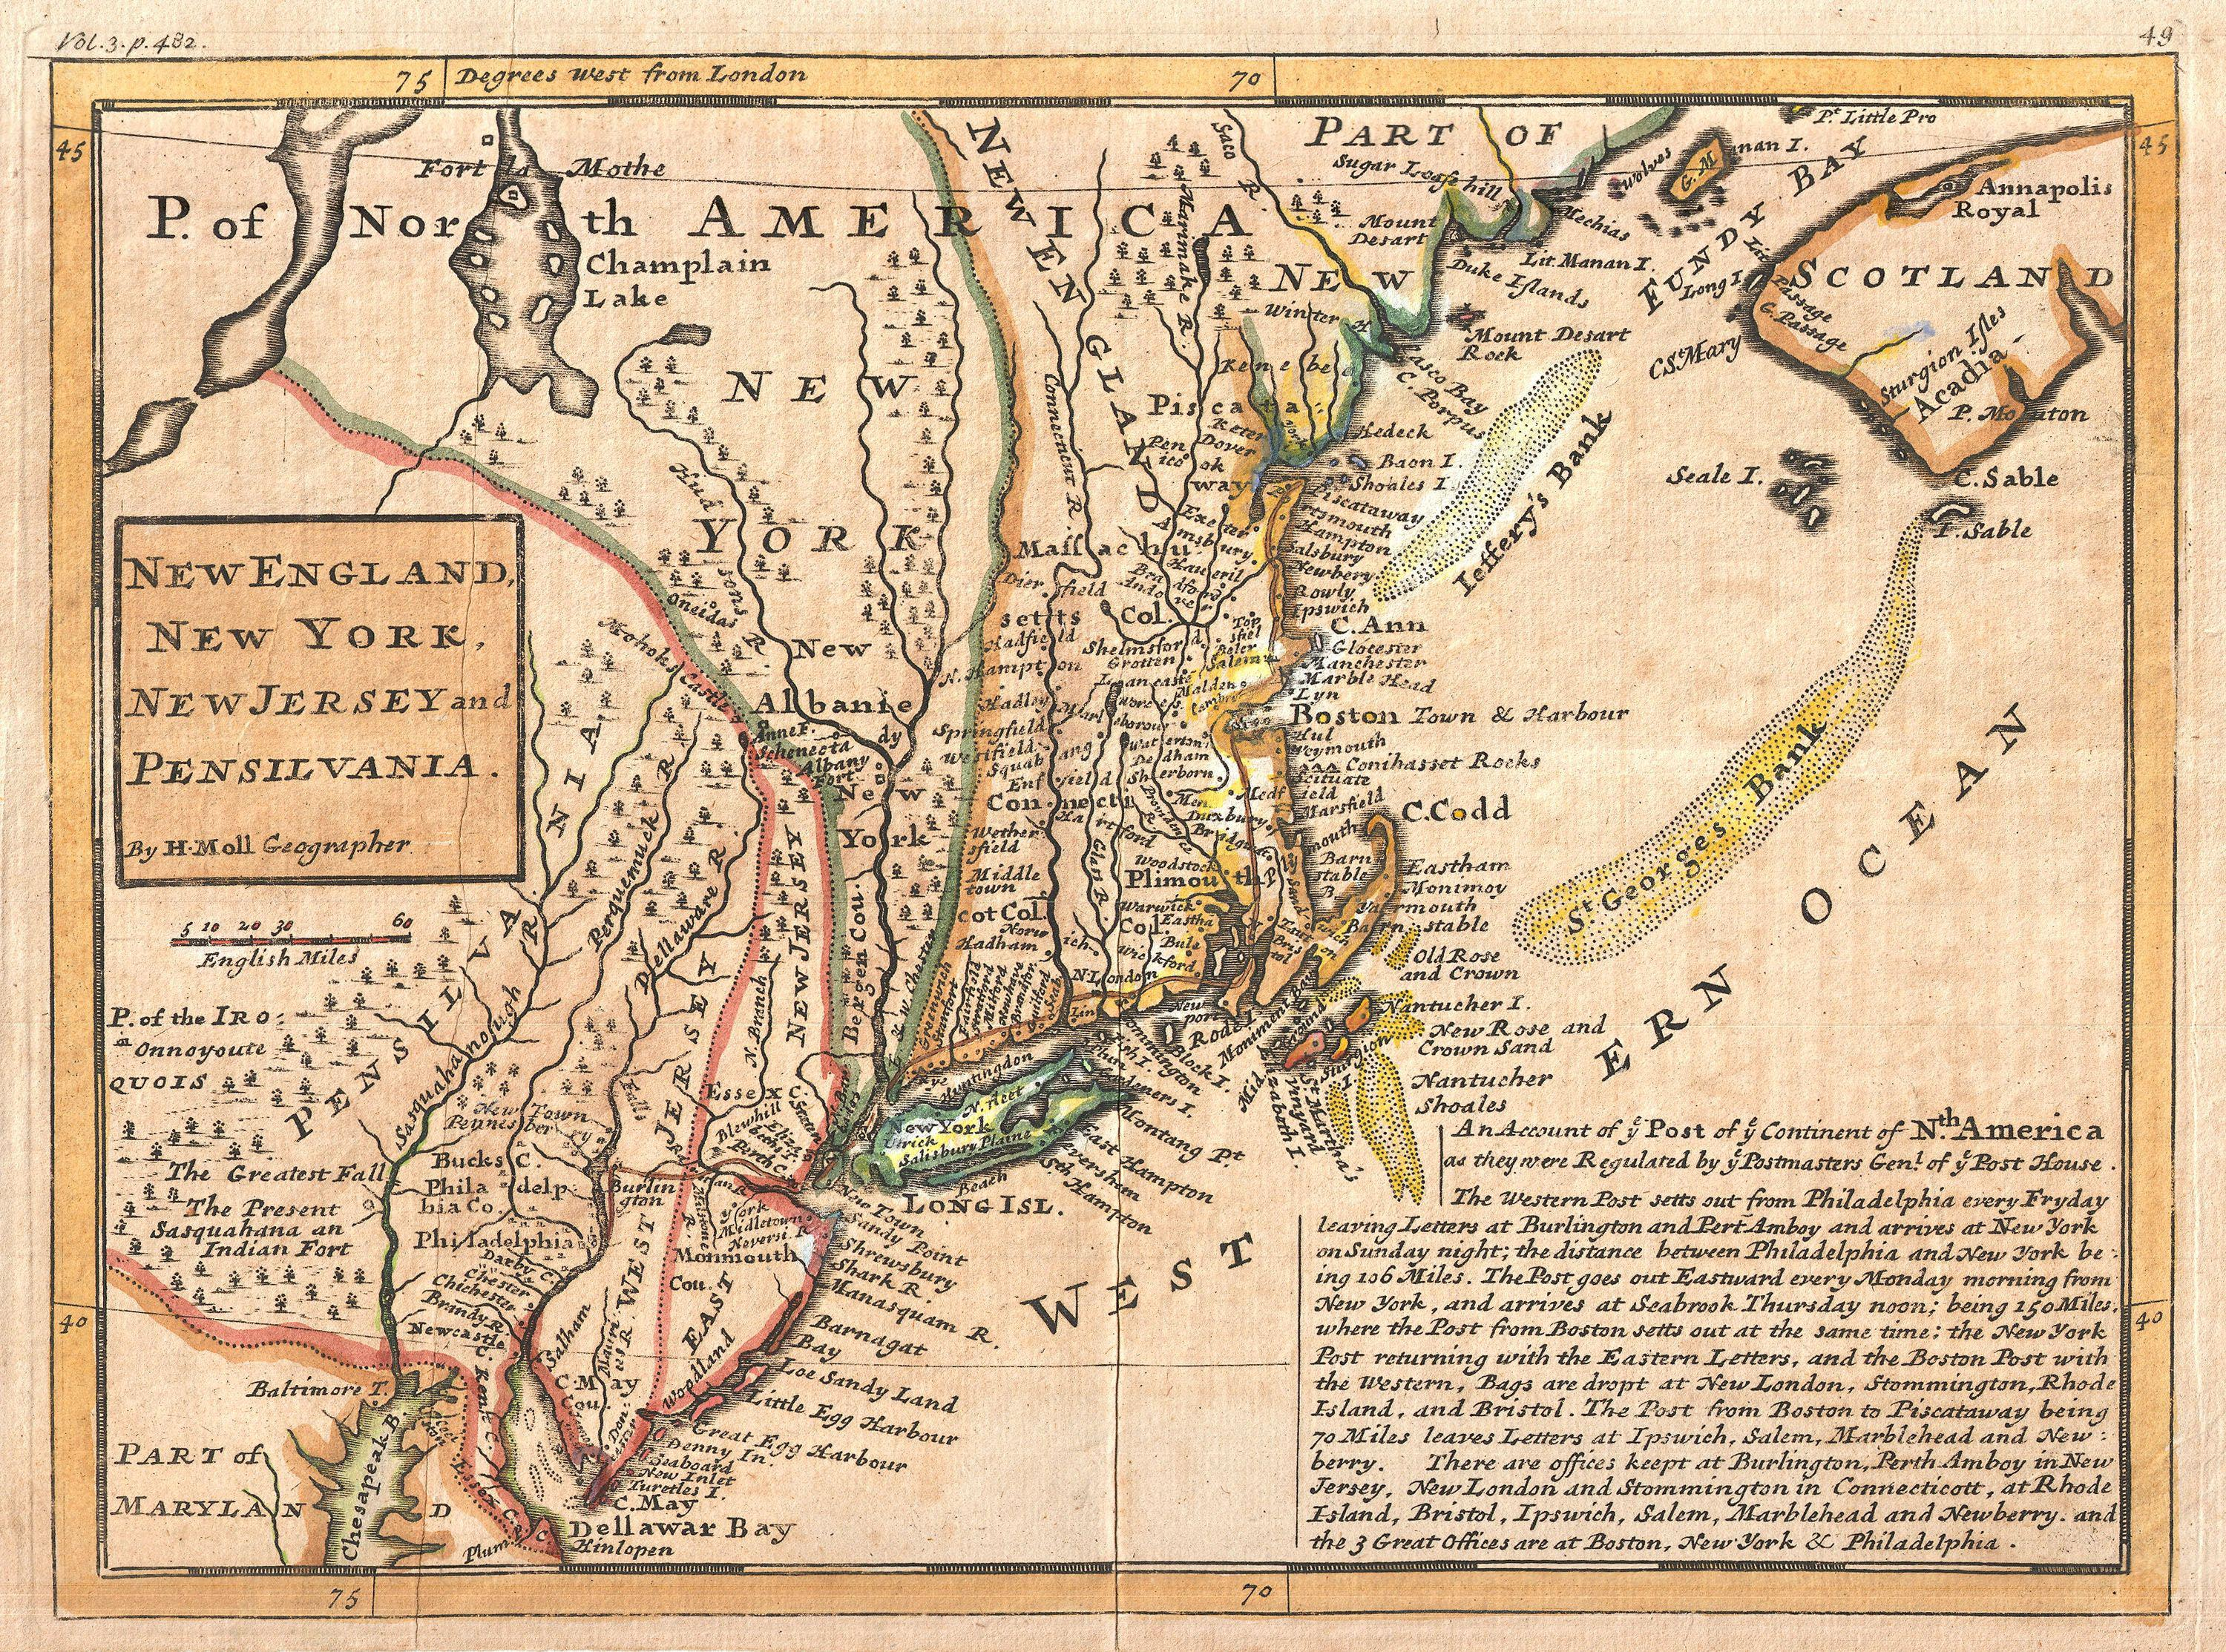 Exploring CPP 10a214: The Downings of Massachusetts Bay